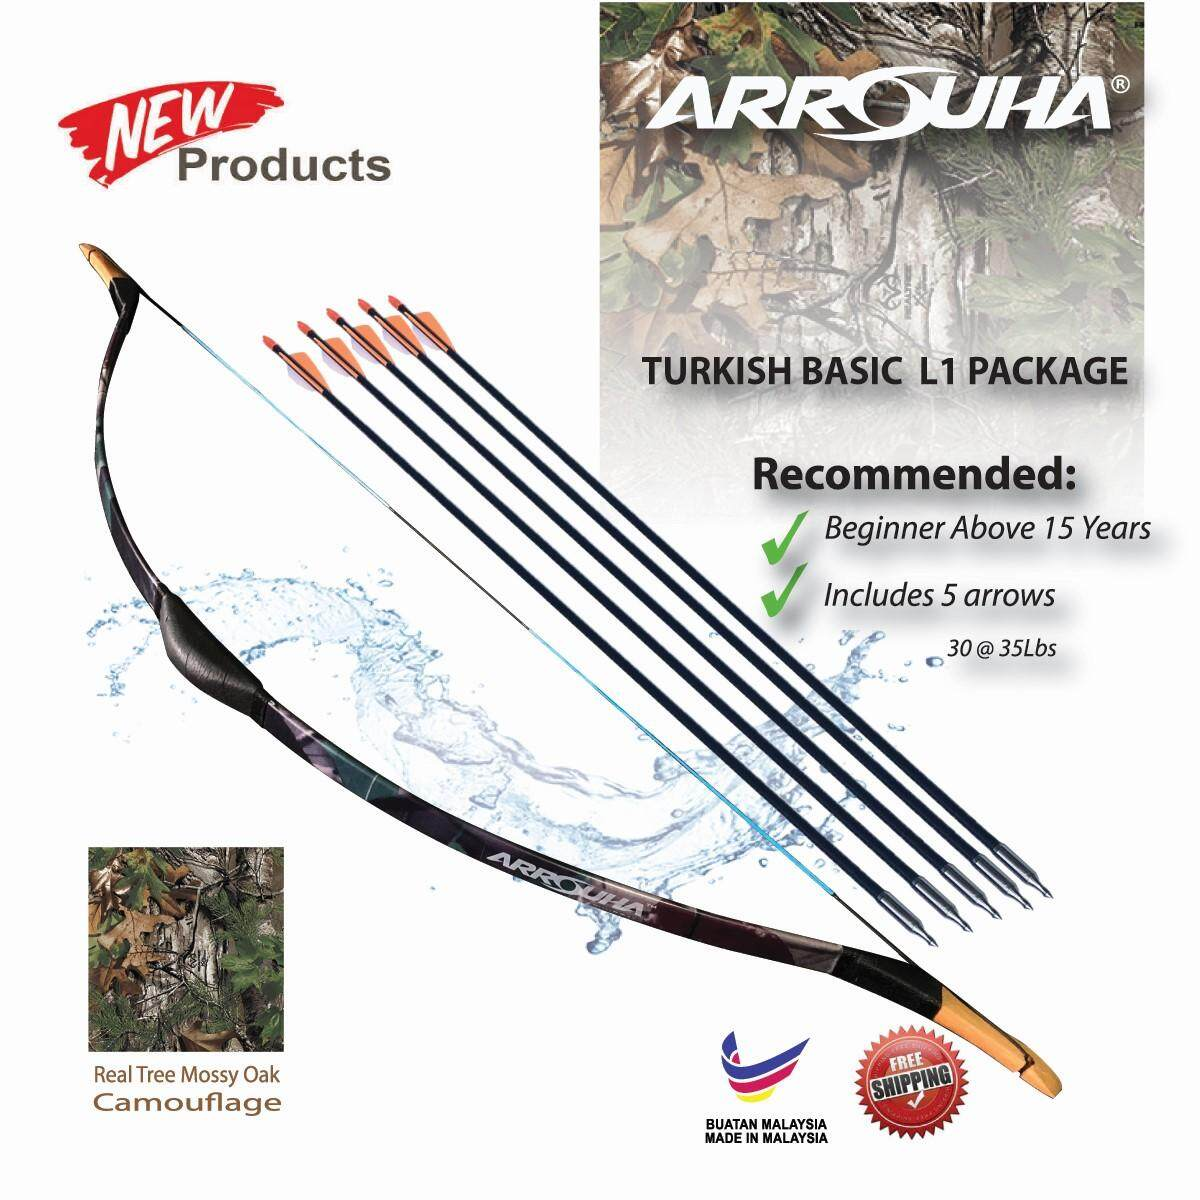 Arrouha Archery Training Turkish Package 30-35lbs Traditional